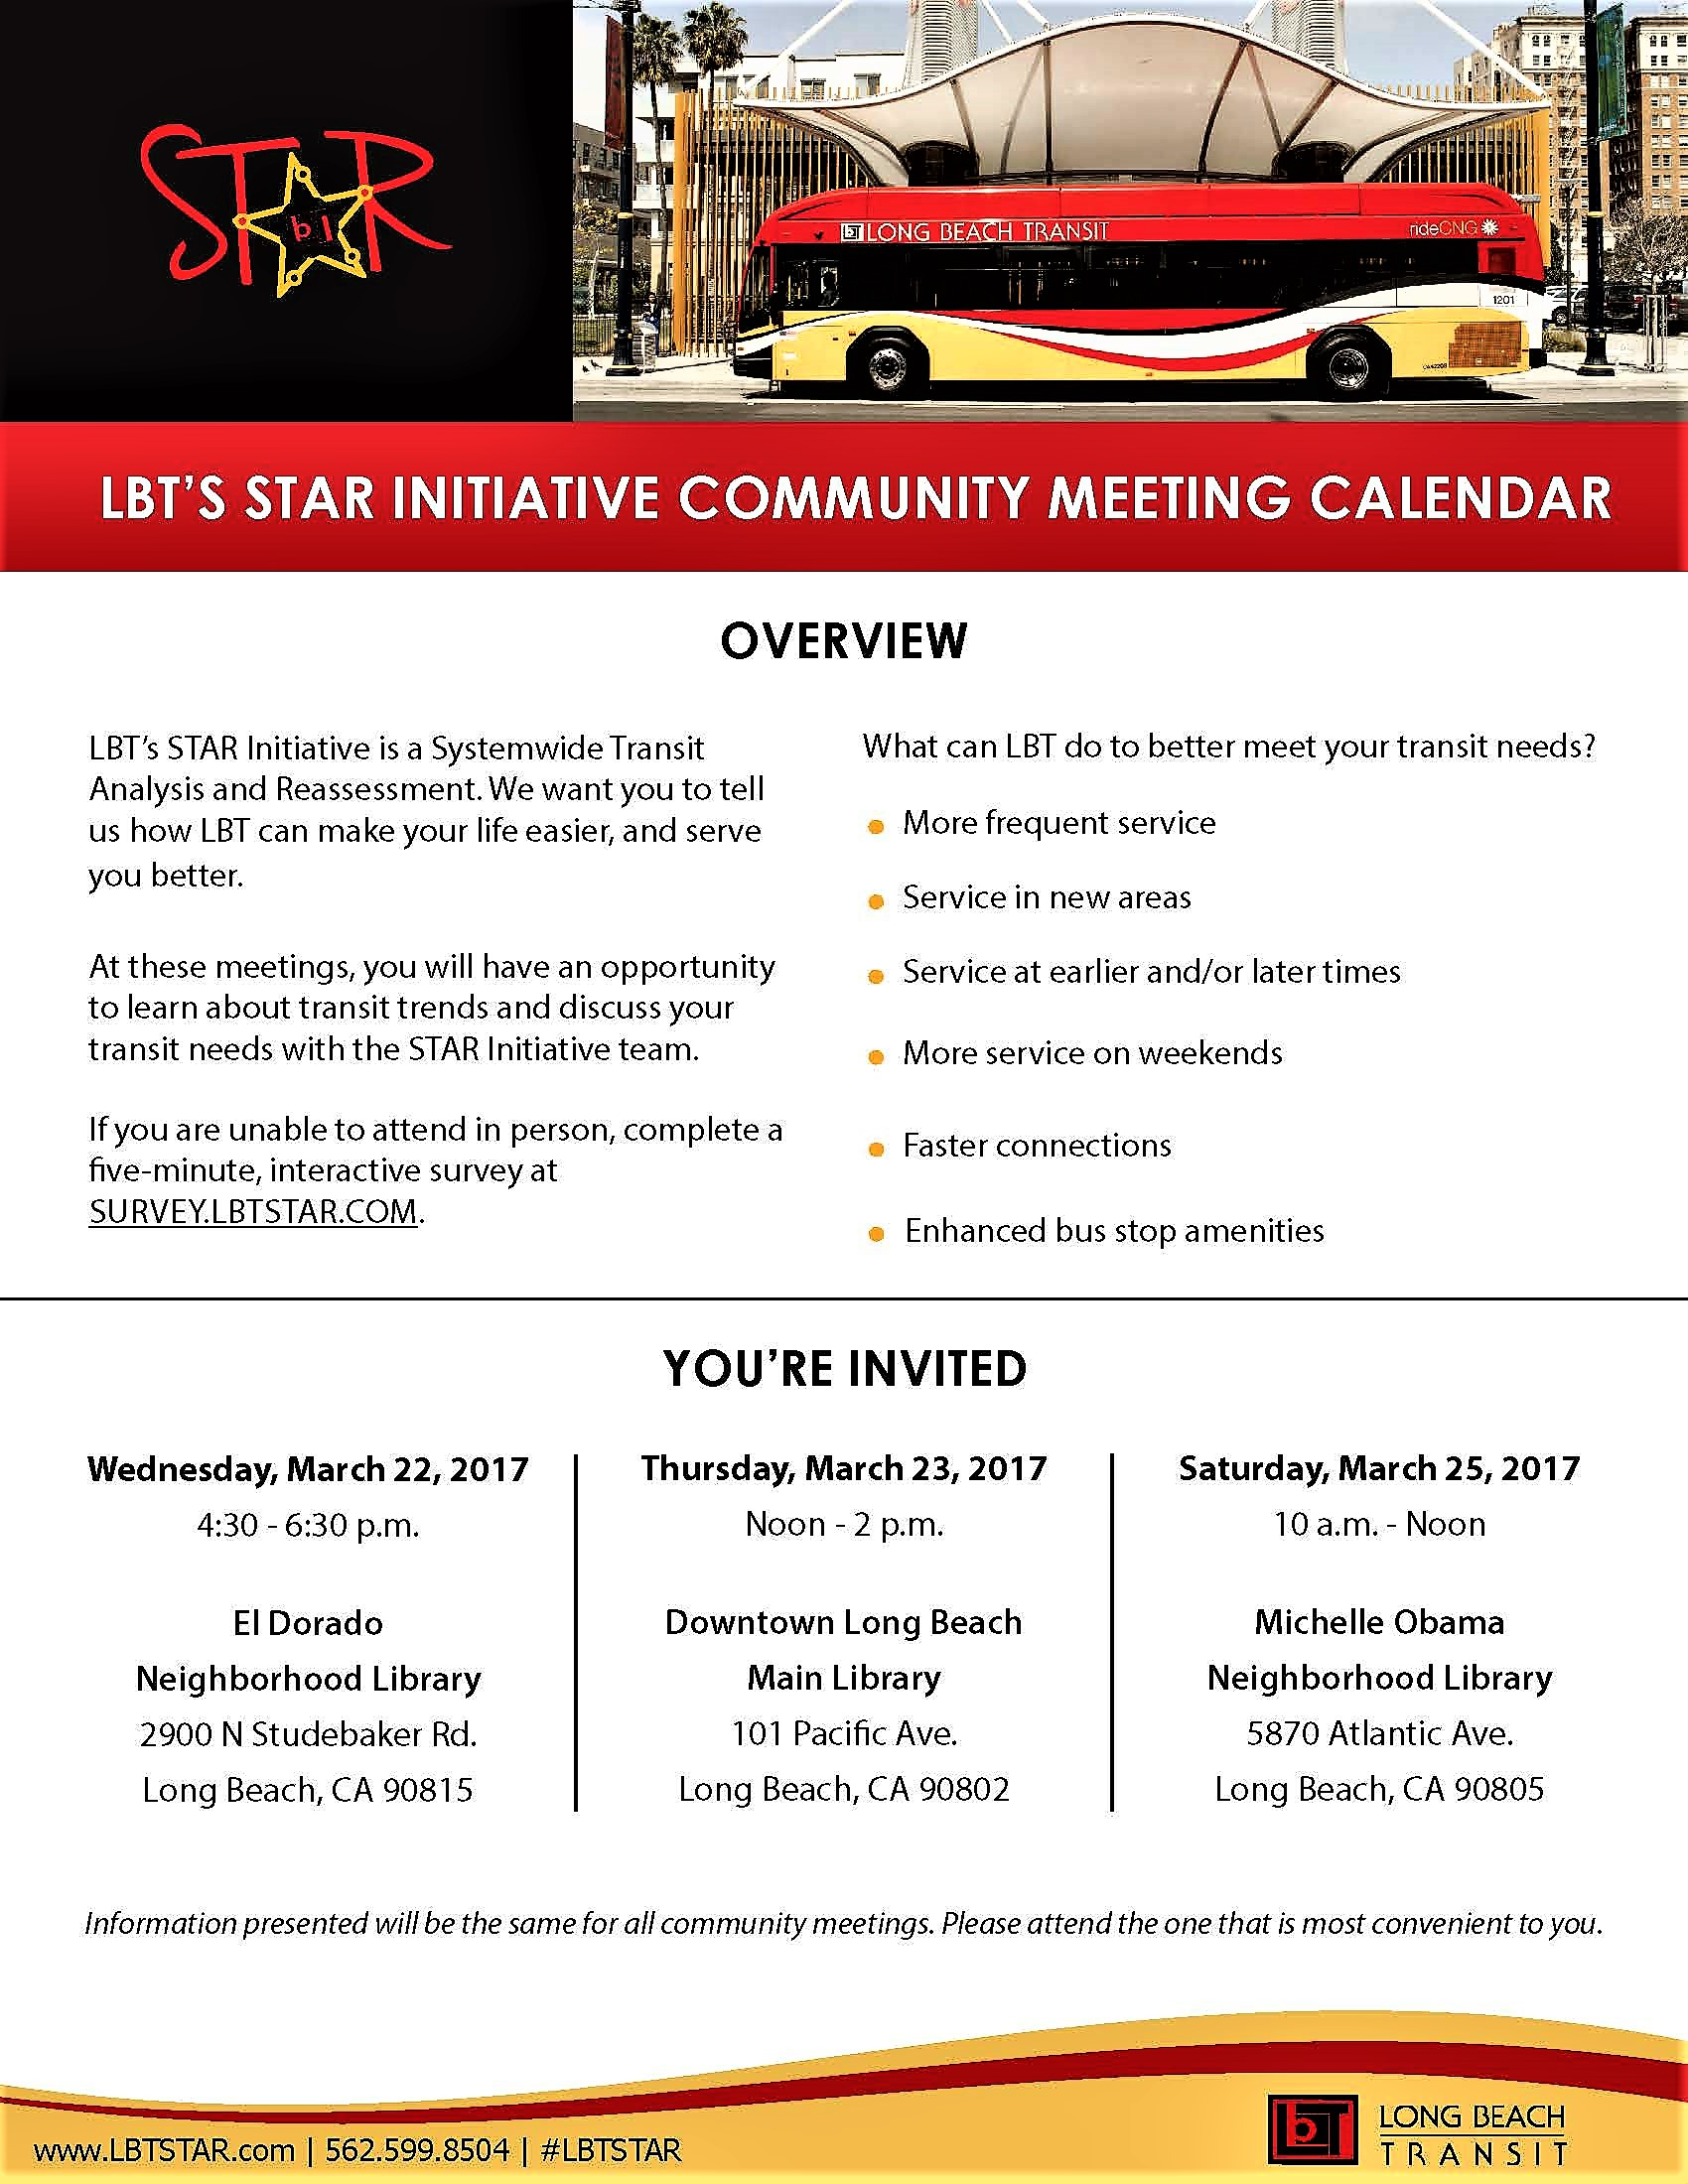 LBT'S INITIATIVE COMMUNITY MEETING CALENDAR